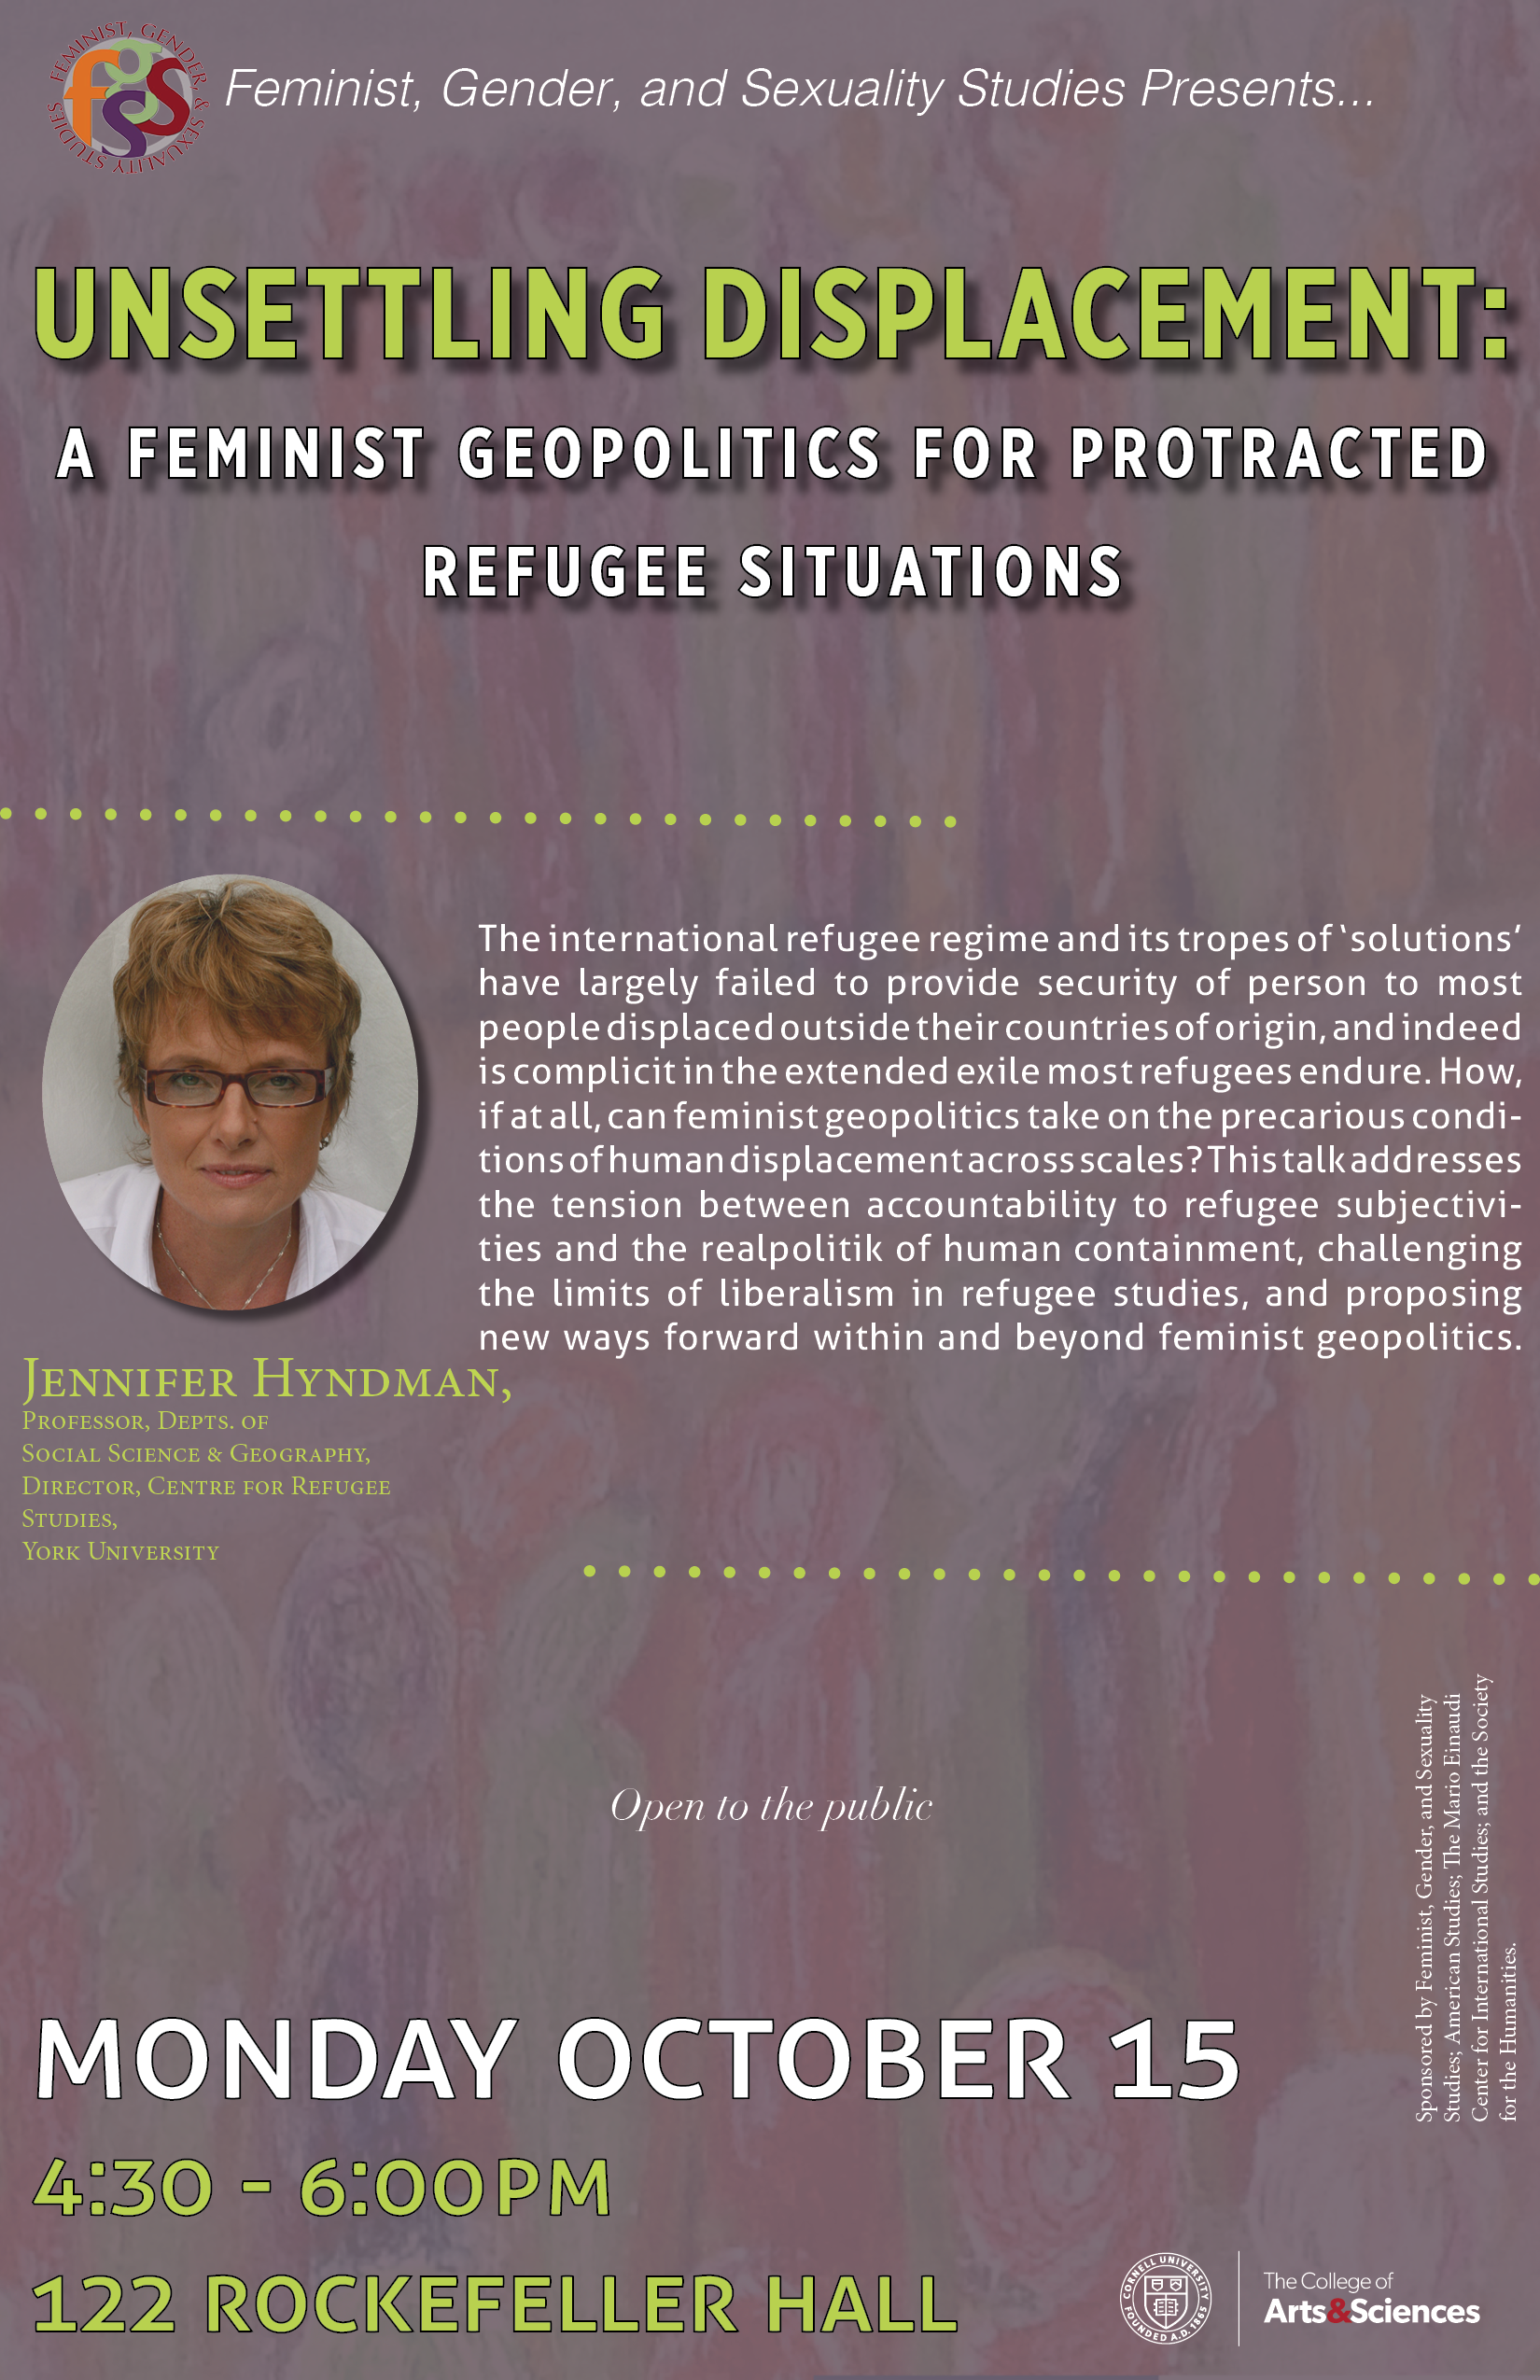 Unsettling Displacement: A Feminist Geopolitics of Protracted Refugee Situations